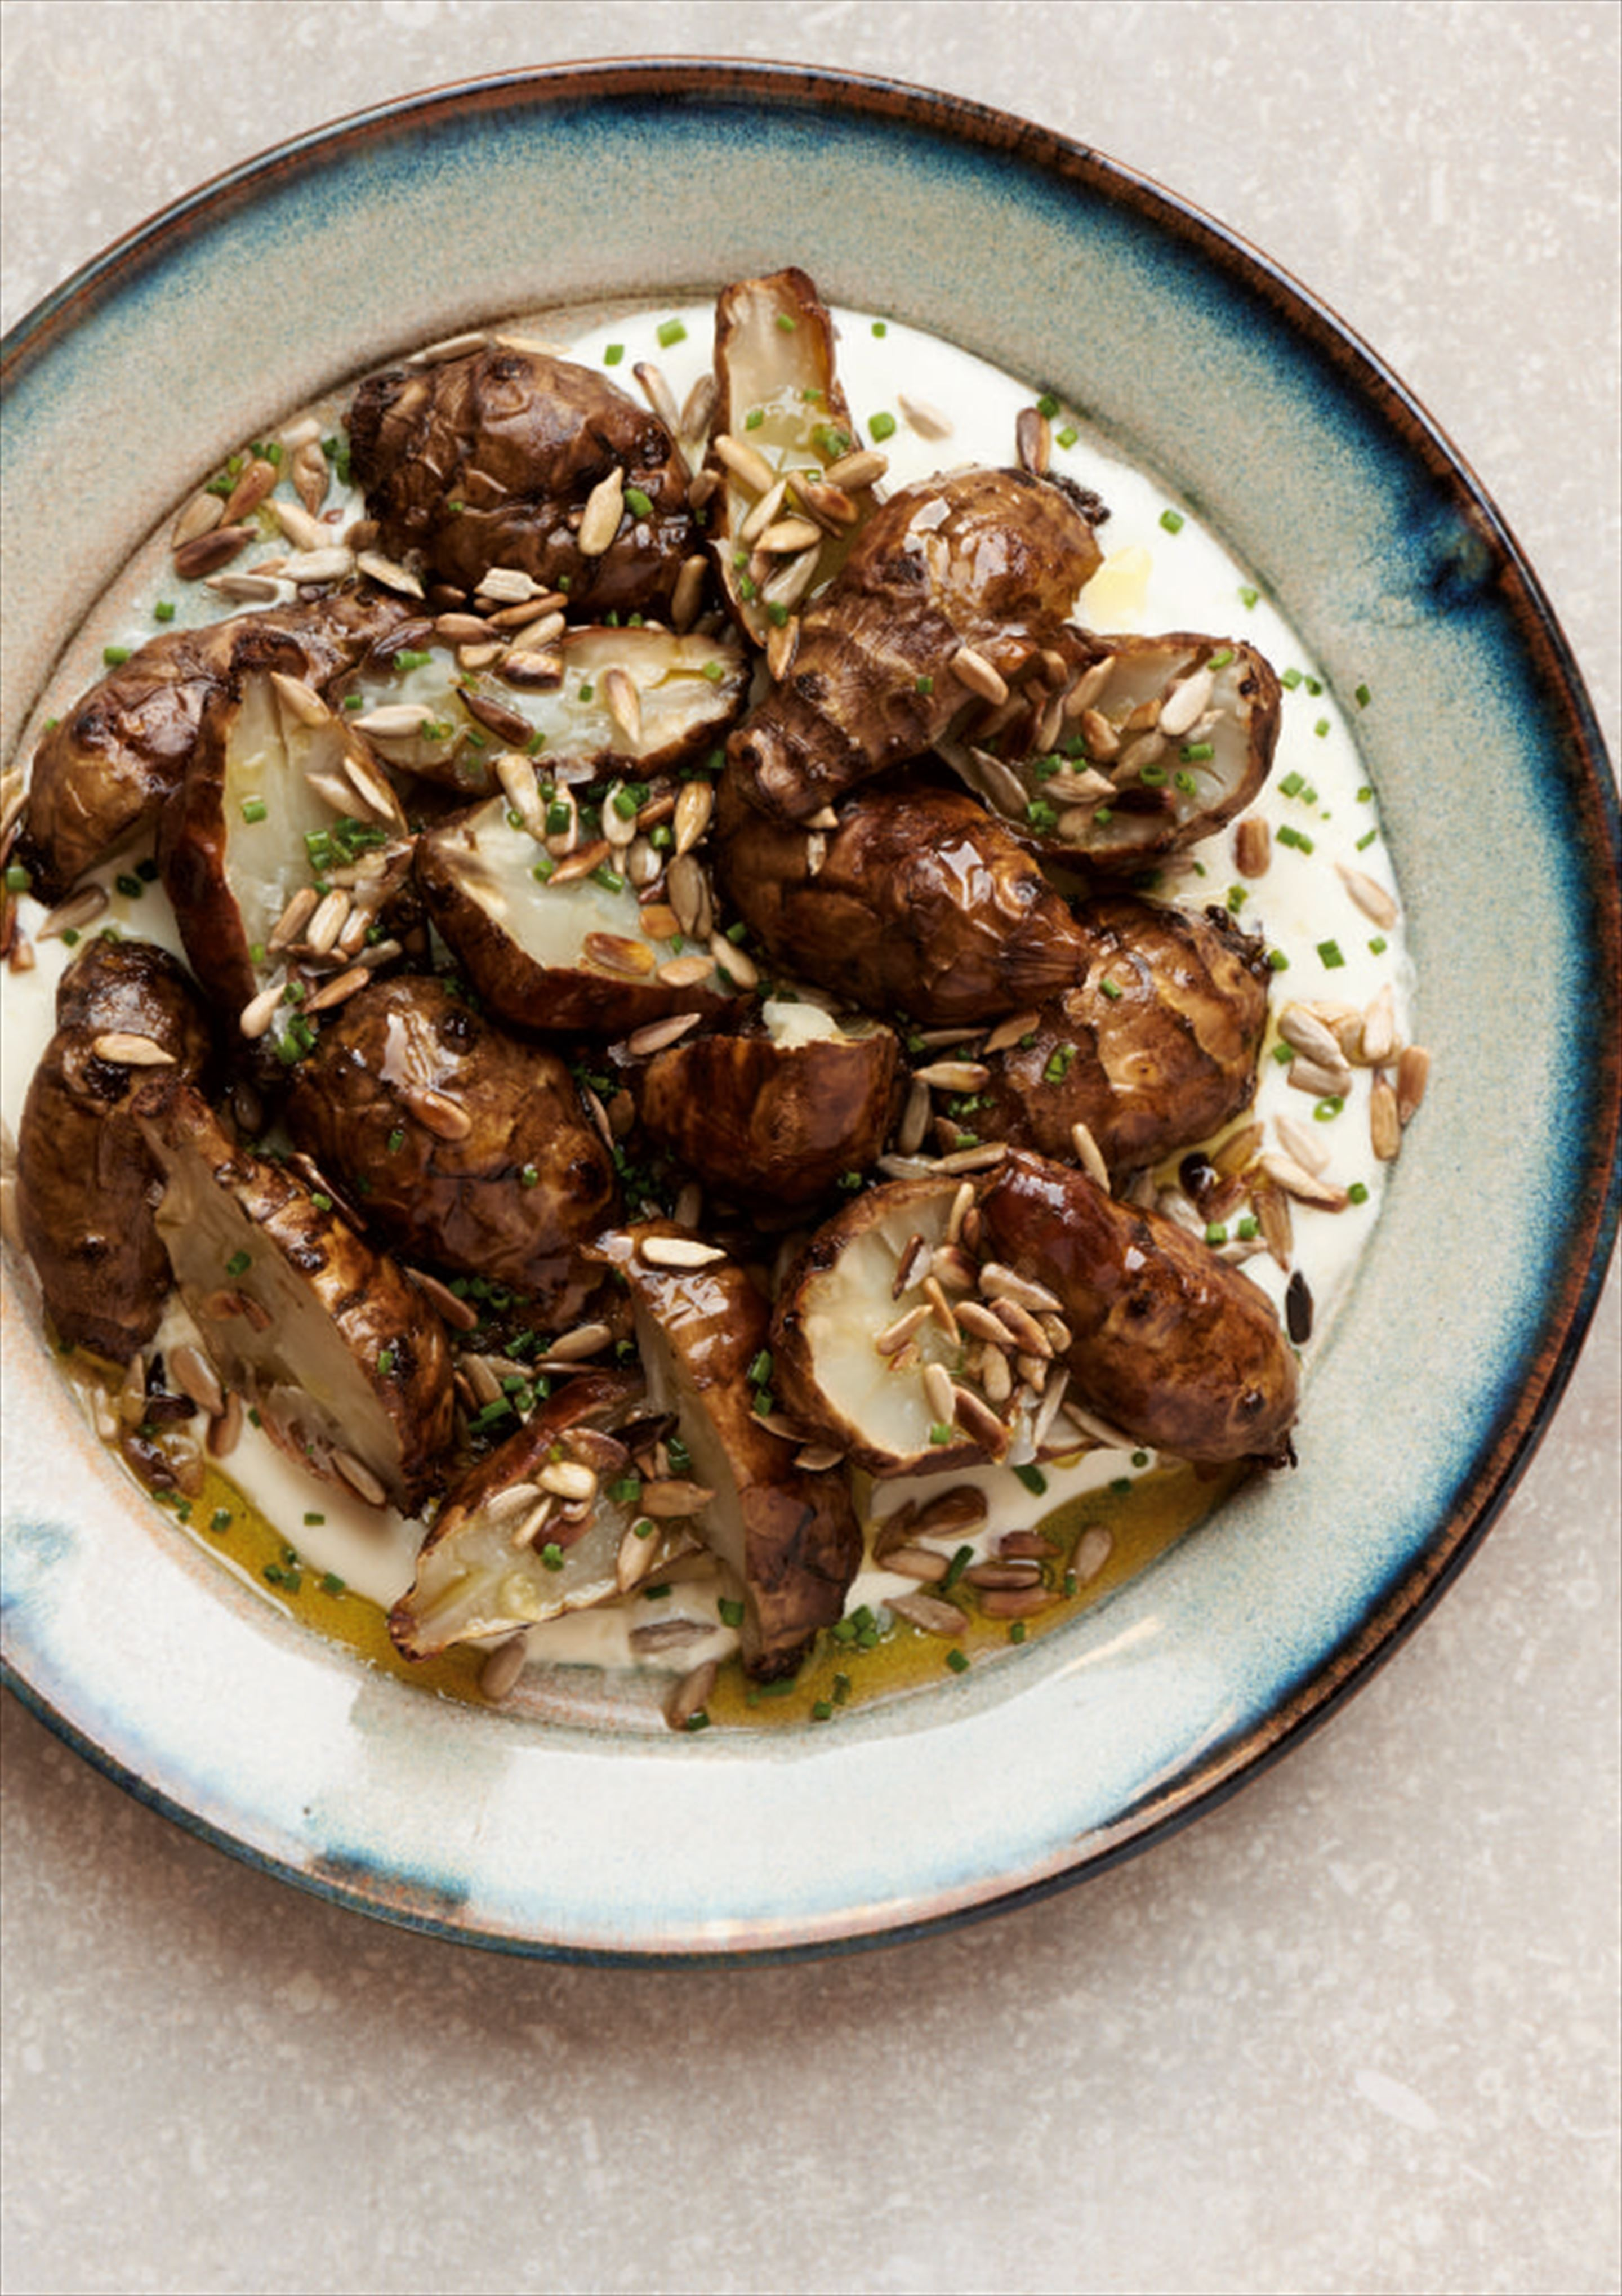 Baked Jerusalem artichokes with yoghurt and sunflower seeds